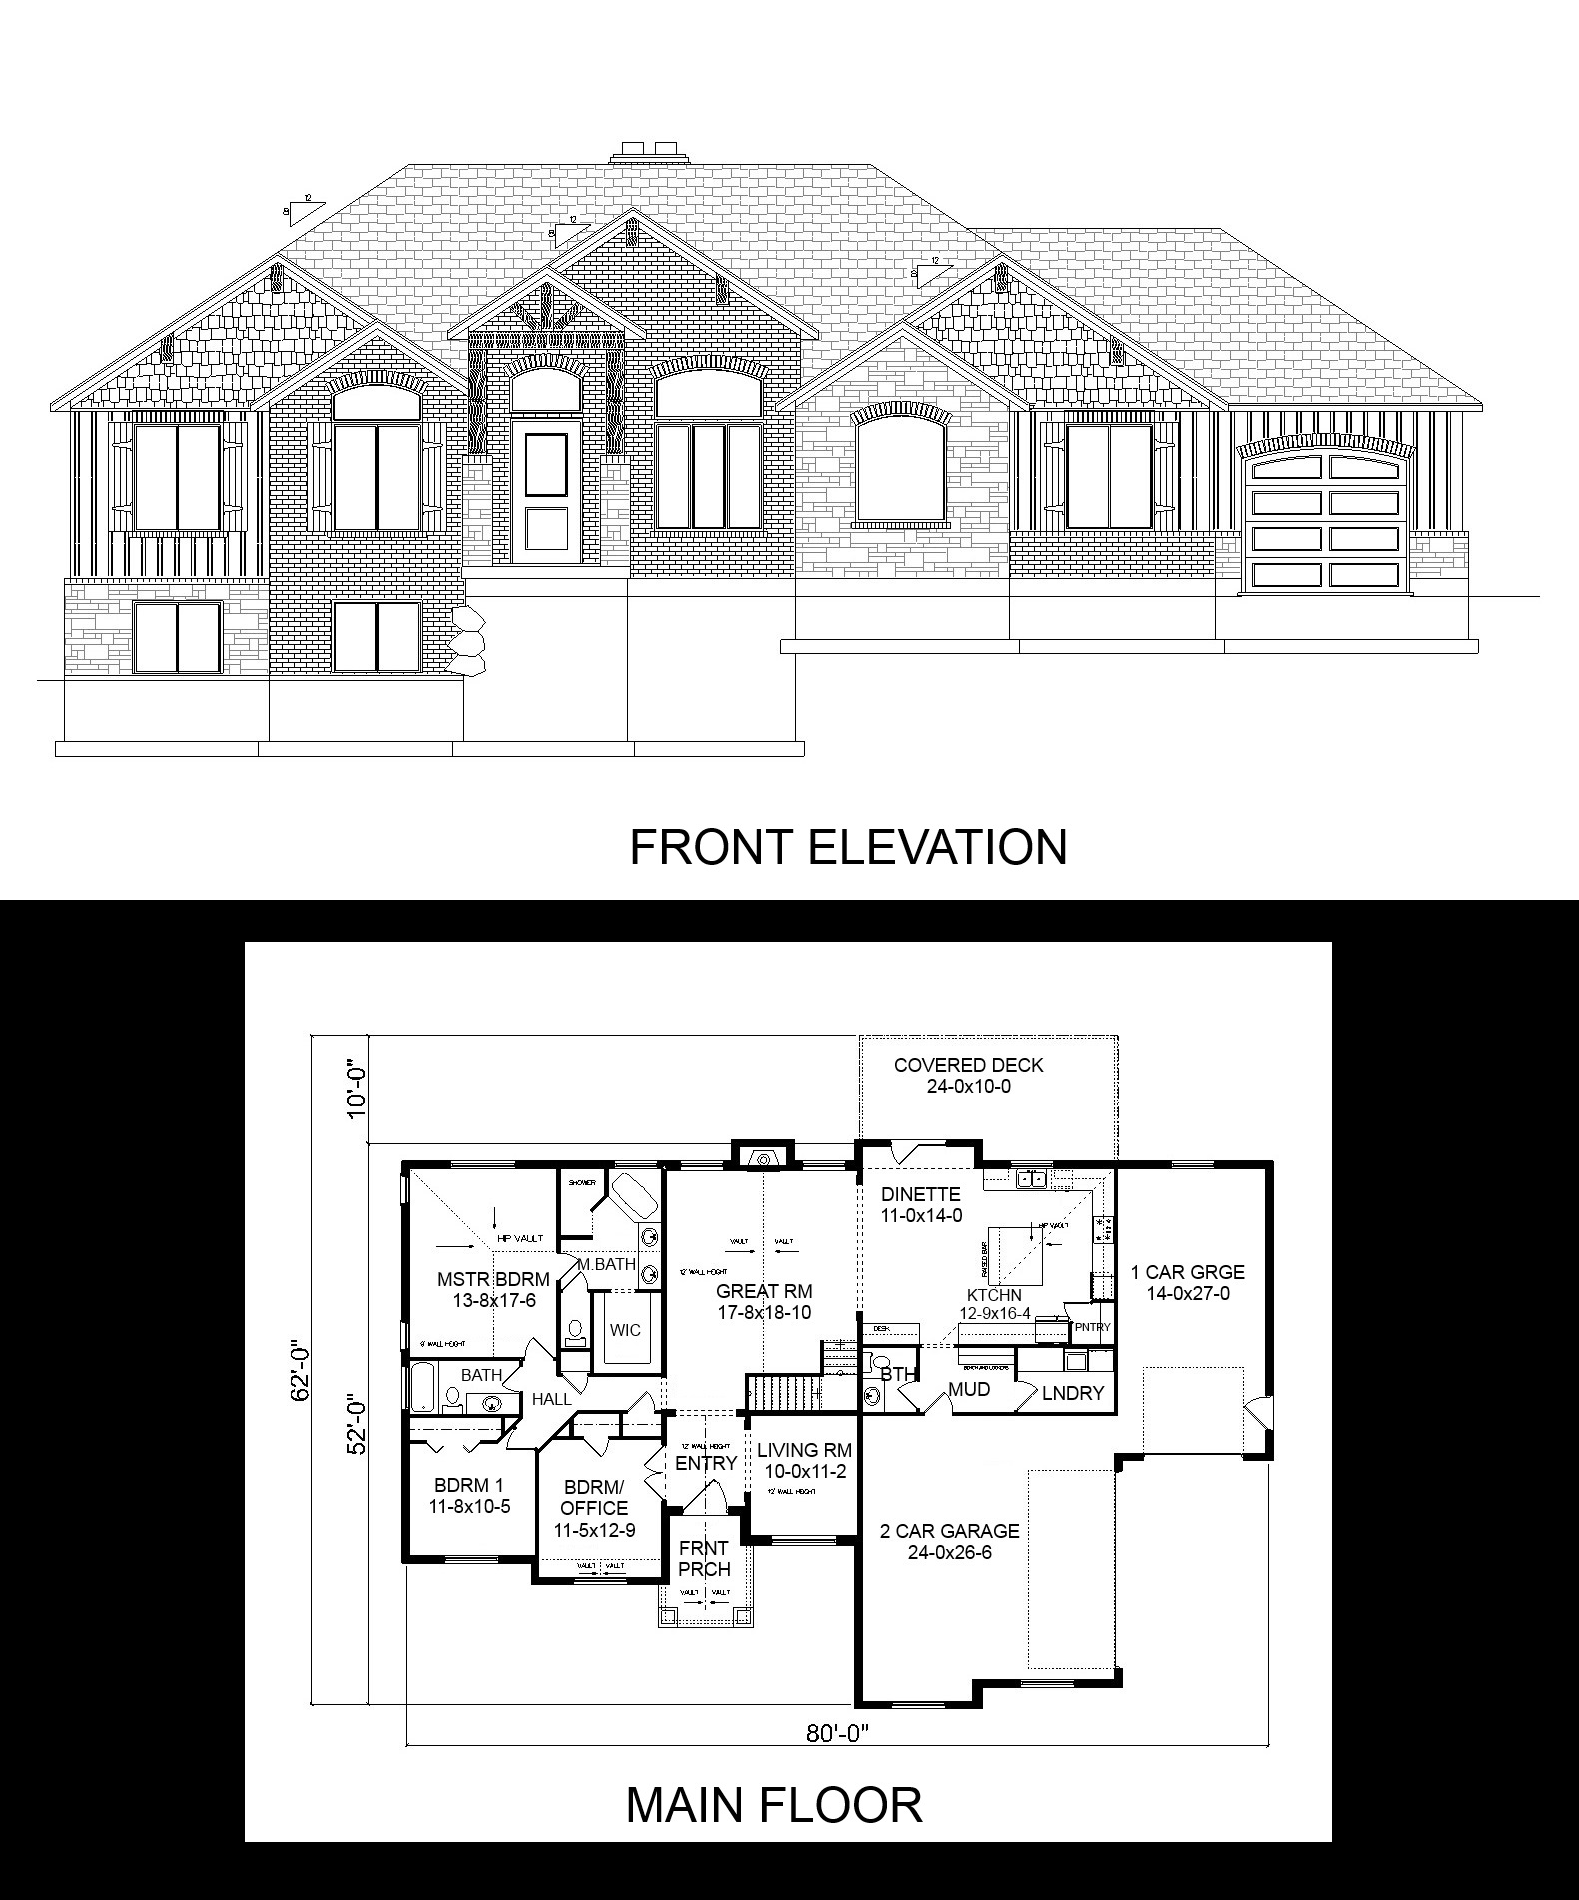 e2ae3fc9e3e752d9817bfbe01f7a947d Rambler House Plans With Vaulted Ceiling on family room vaulted ceiling, elevations vaulted ceiling, two-story vaulted ceiling, murals for vaulted ceiling,